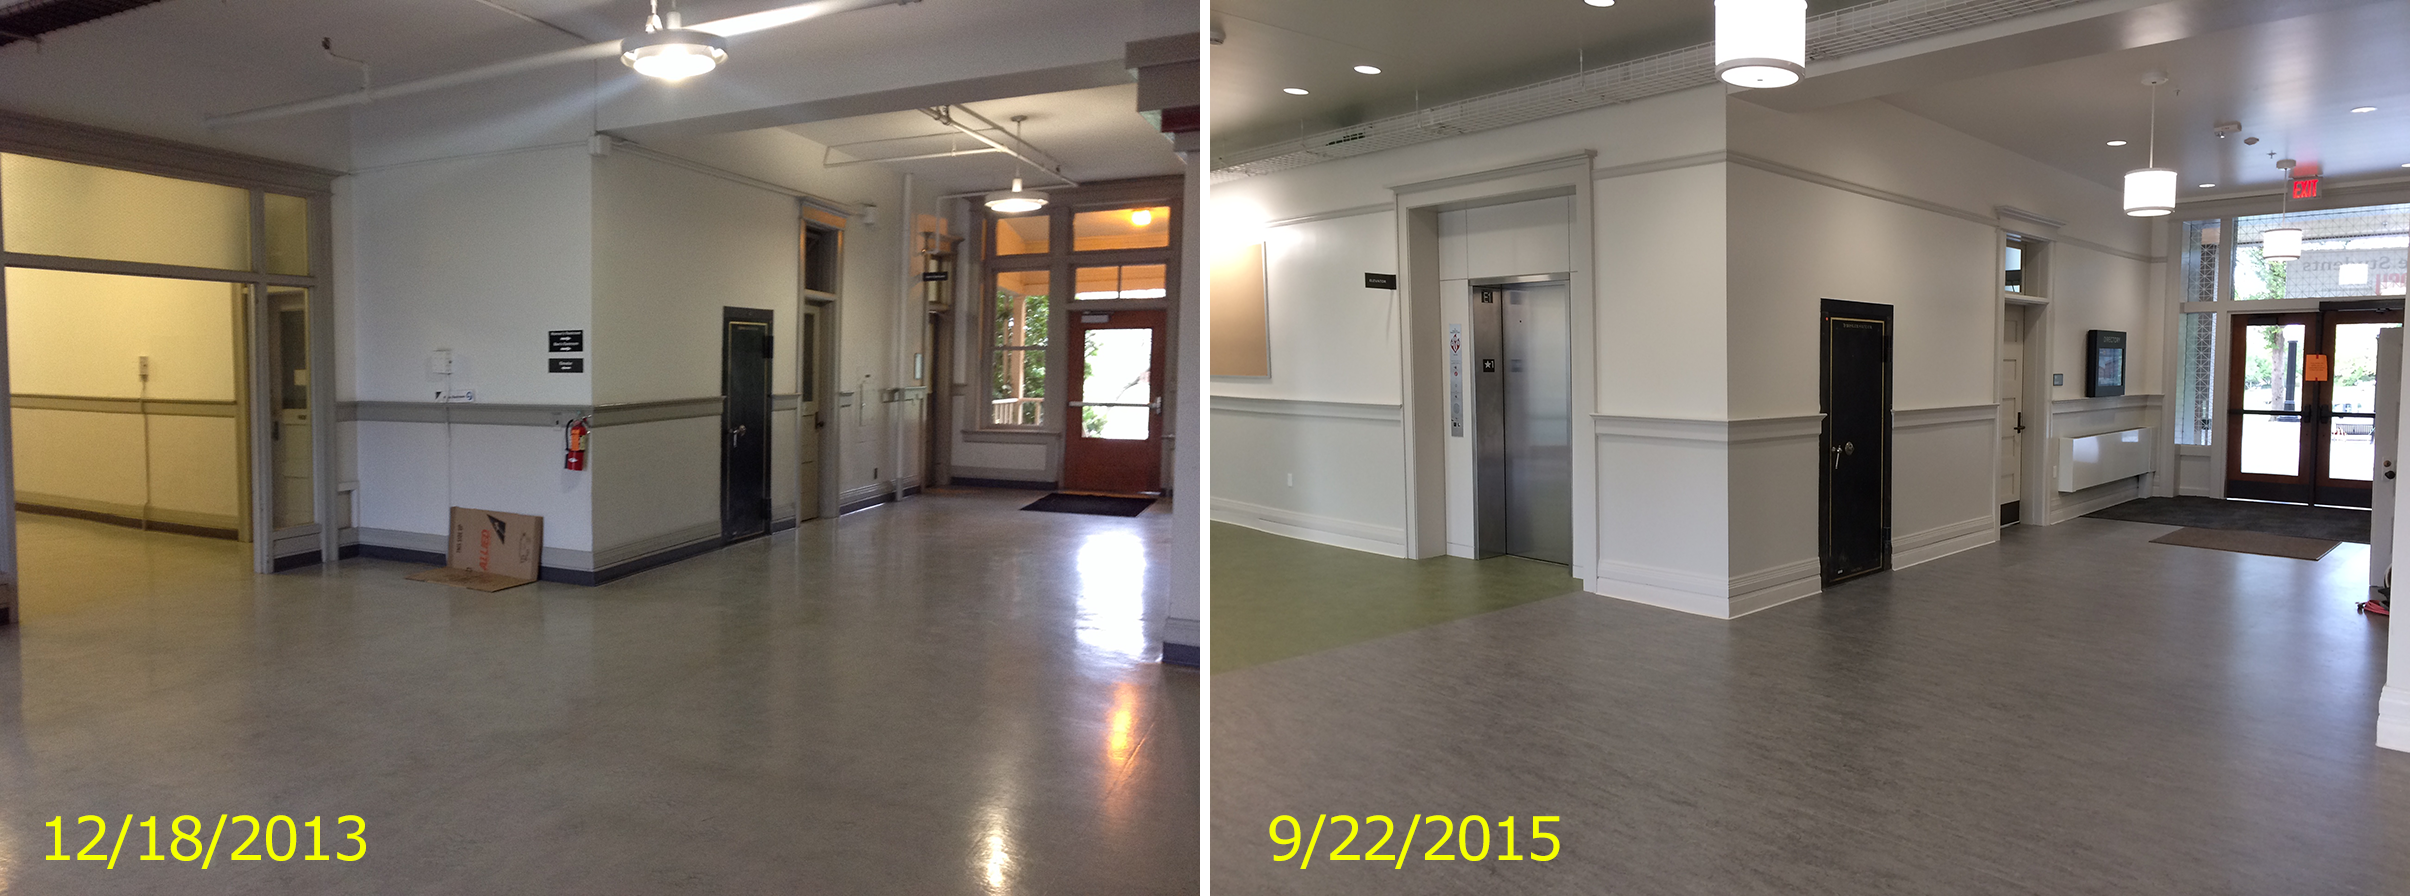 New elevator access to the fourth floor while maintaining the historic vault doors